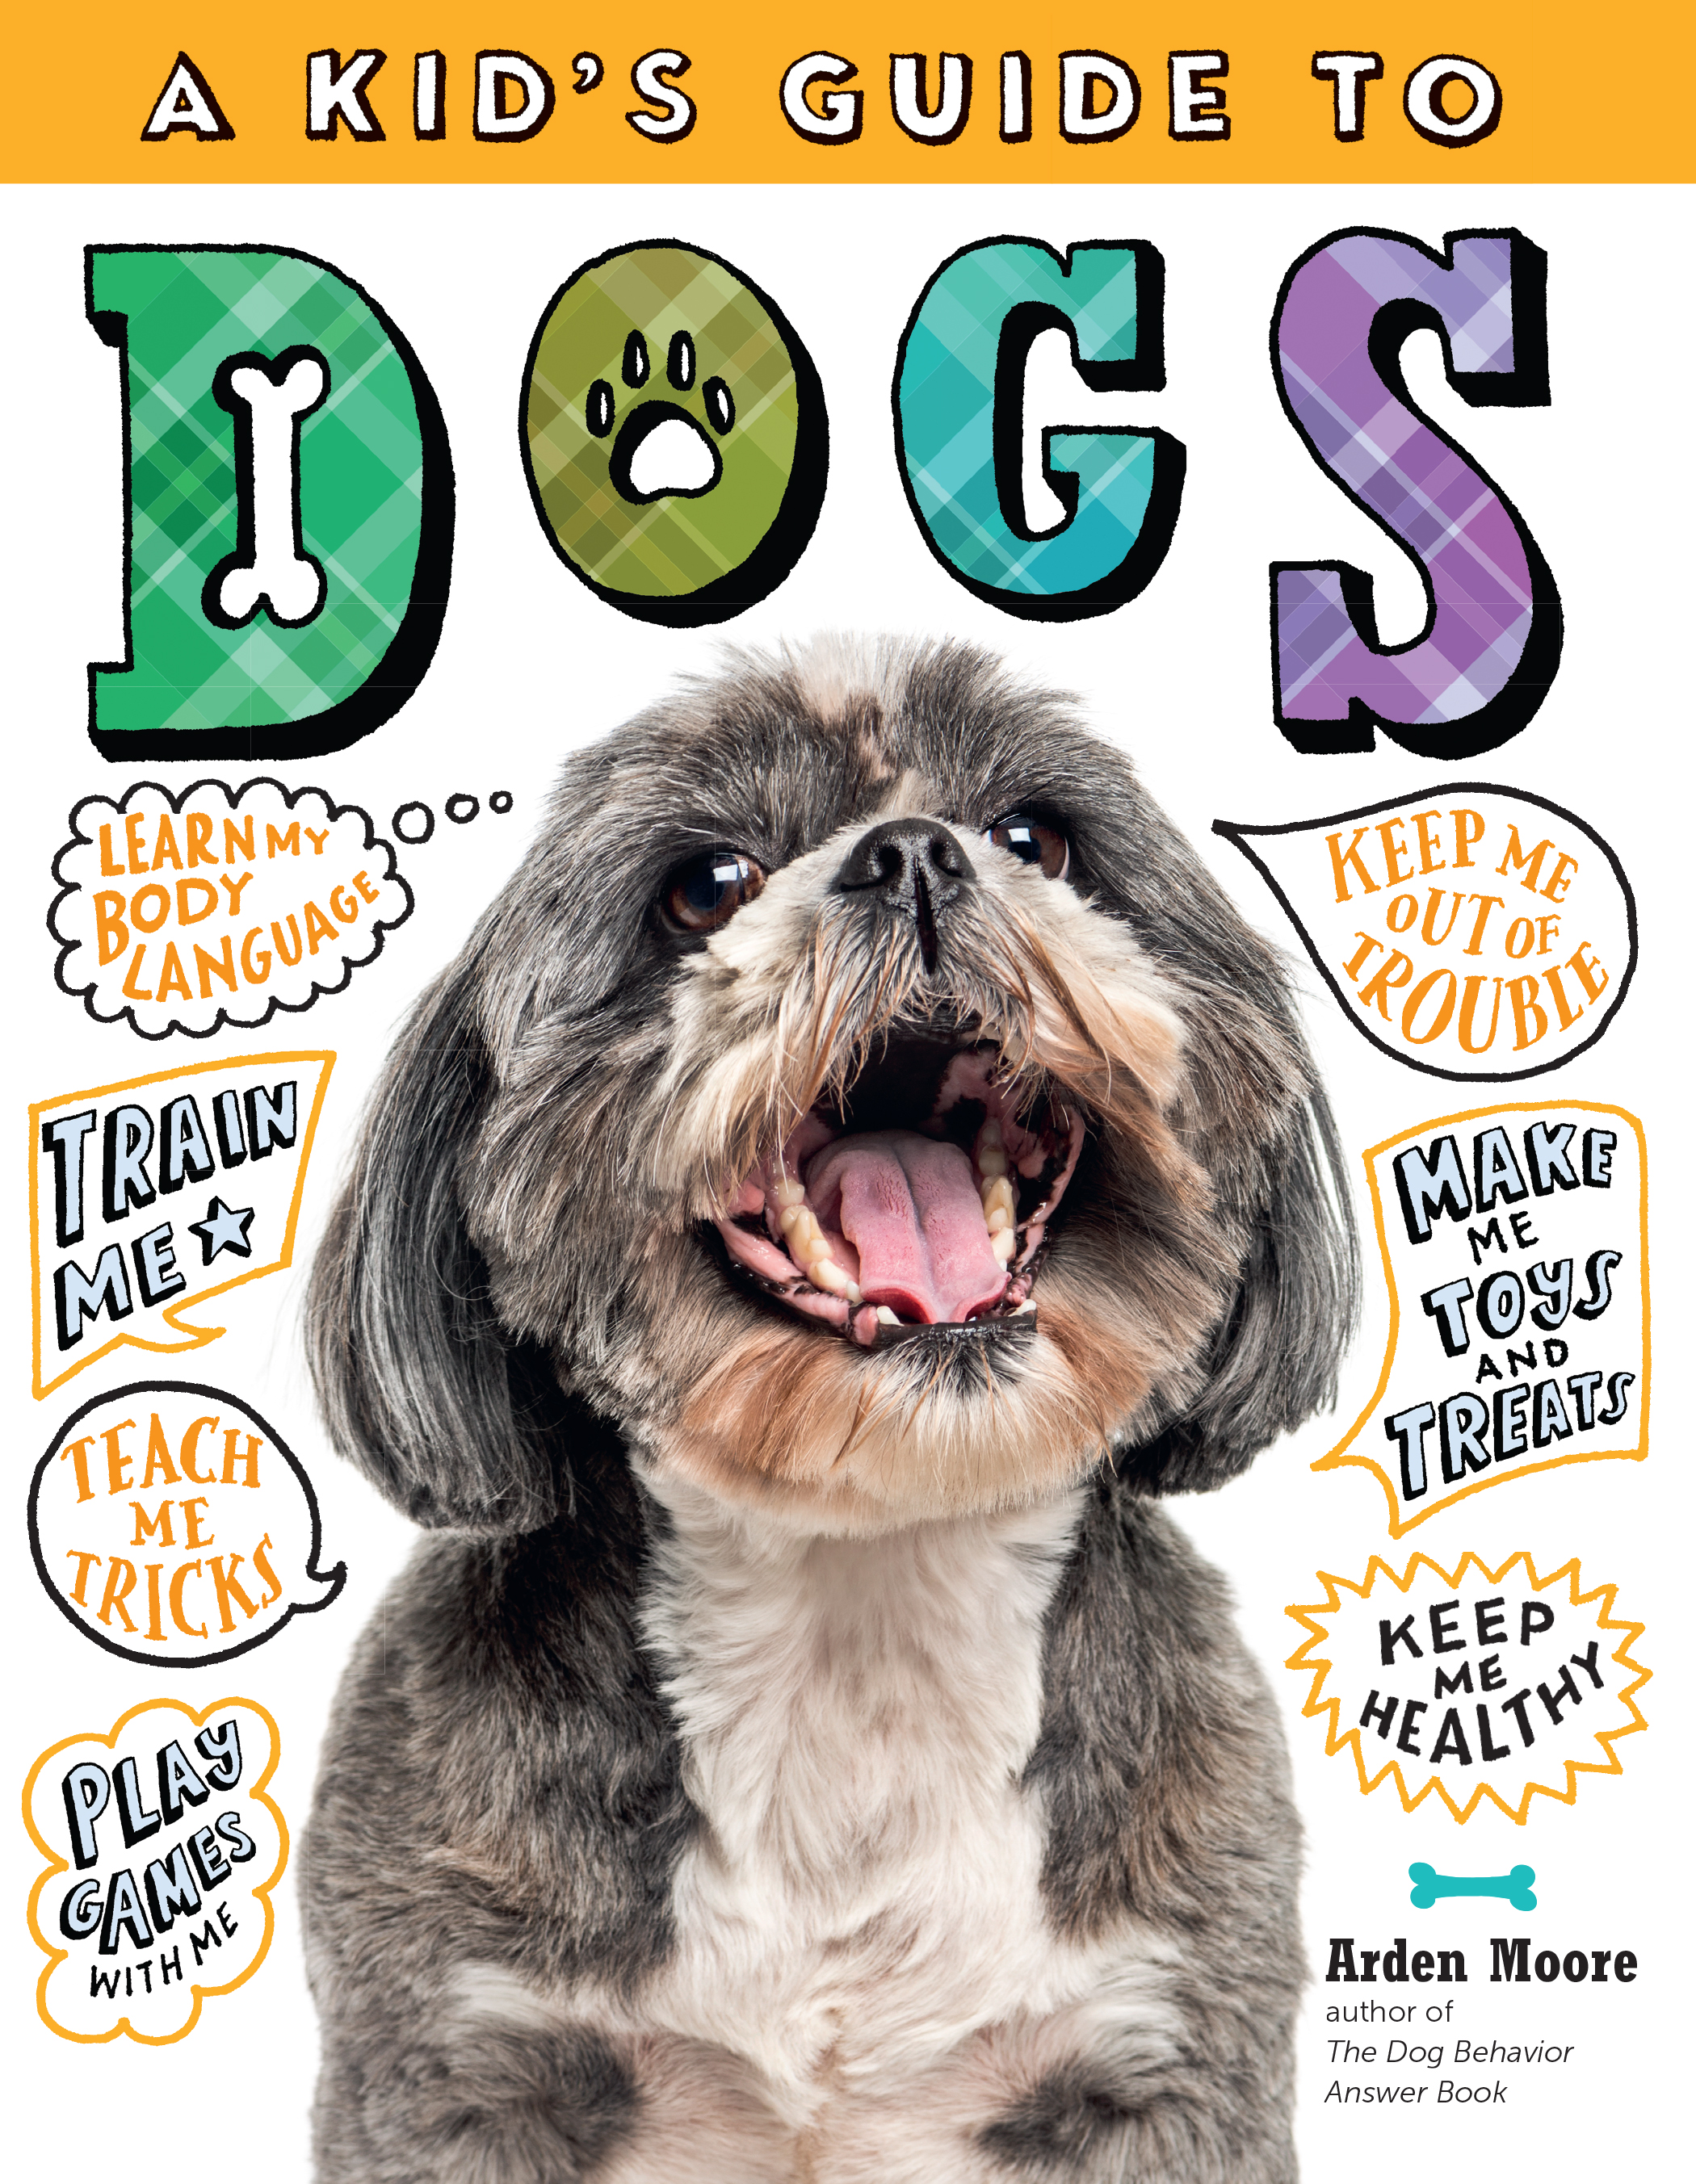 A Kid's Guide to Dogs How to Train, Care for, and Play and Communicate with Your Amazing Pet! - Arden Moore